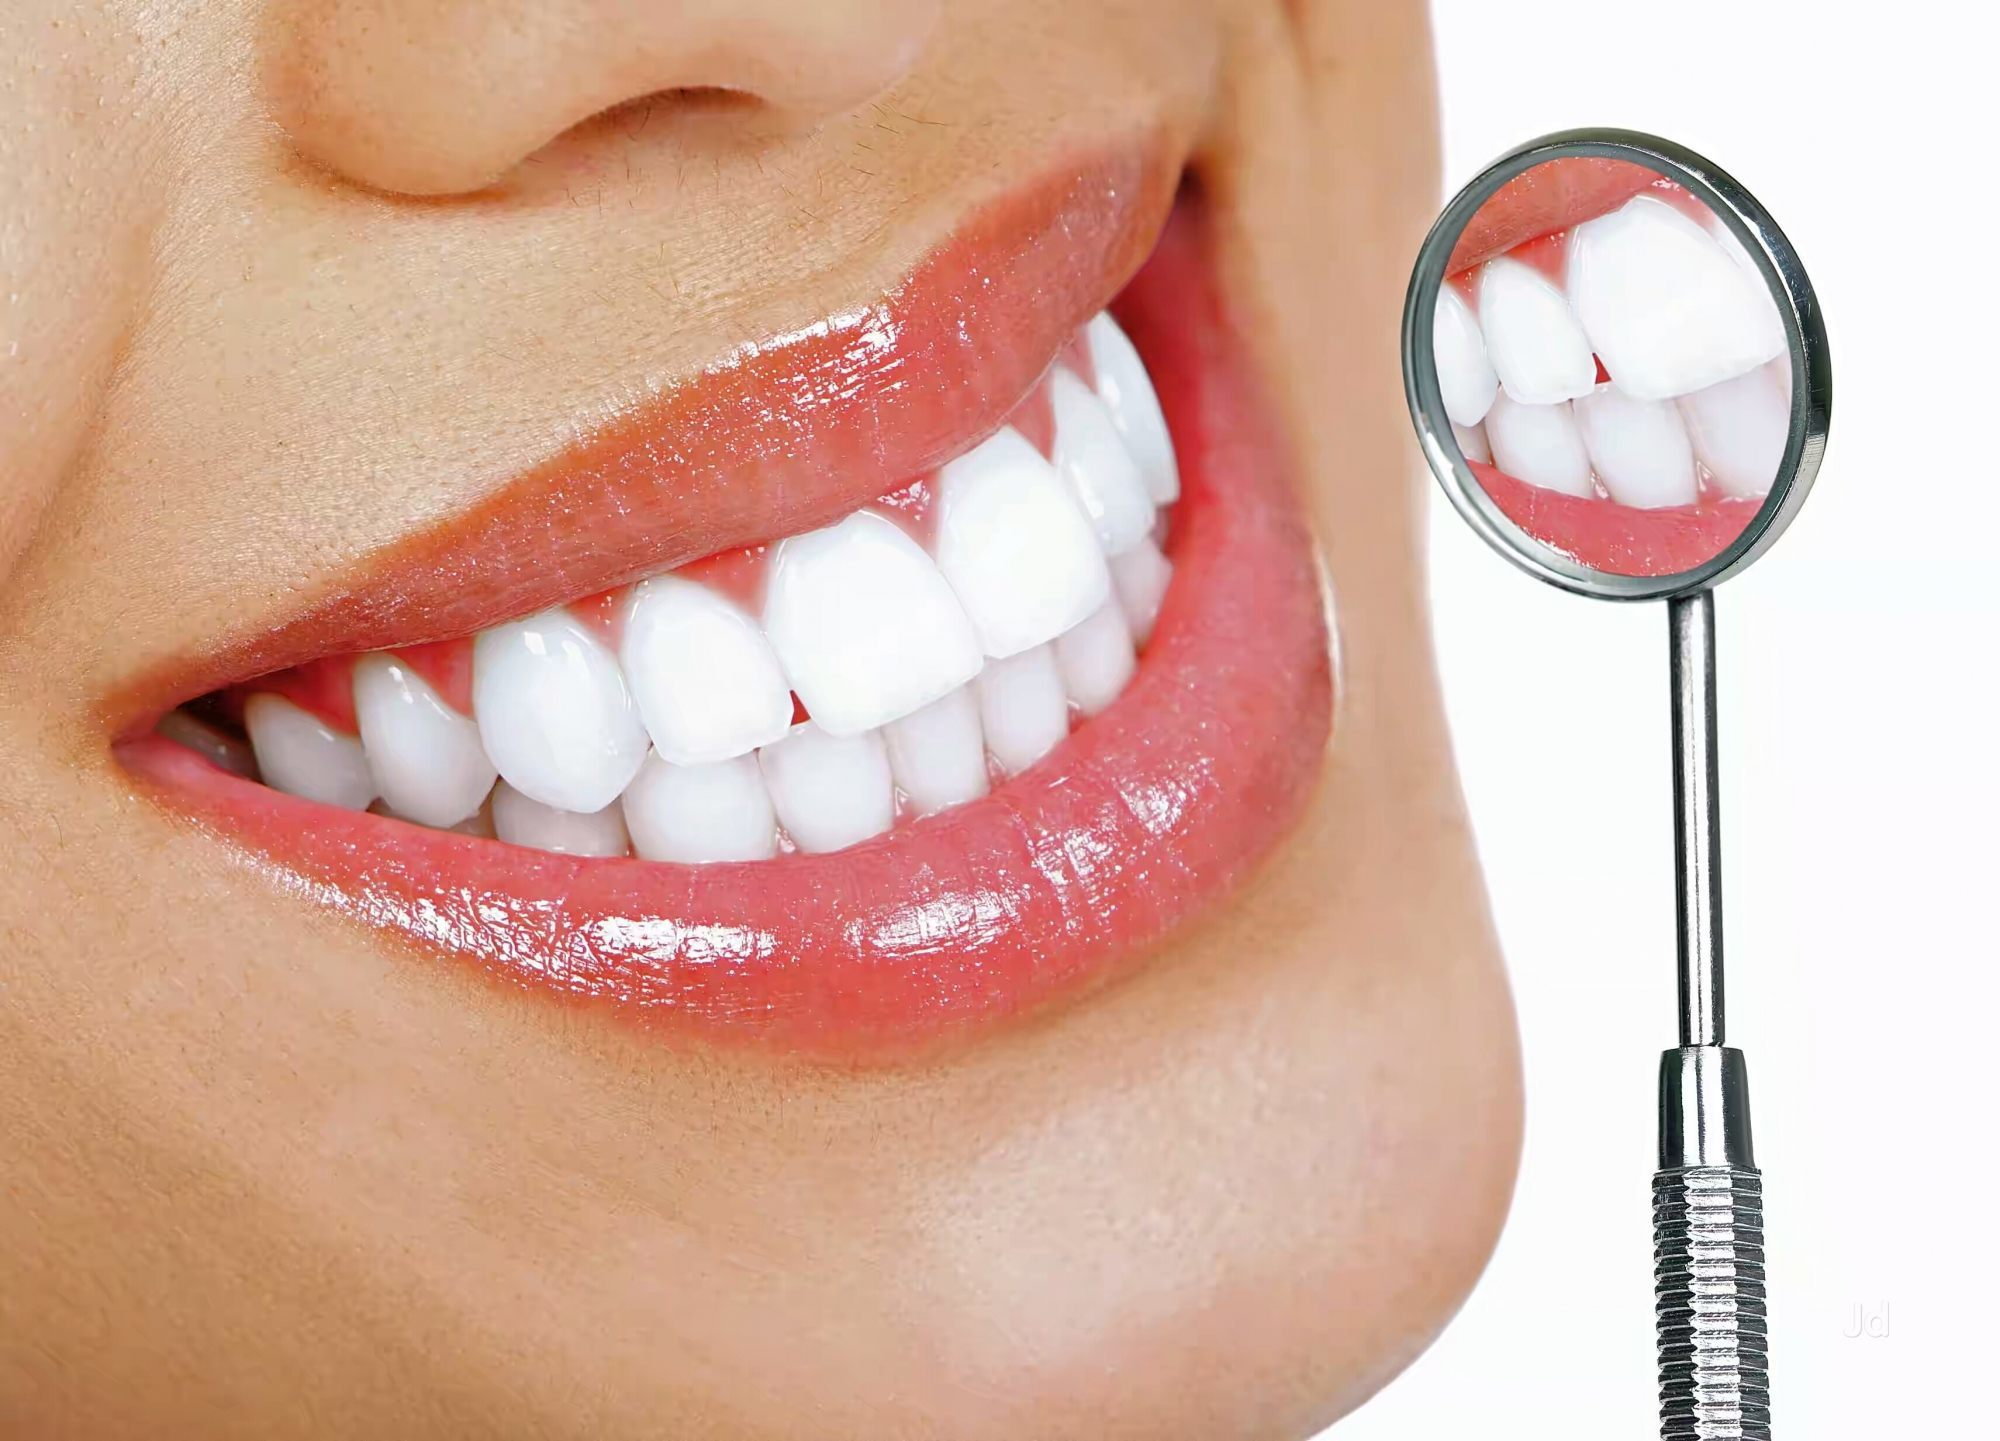 Get 500/- Off on Impactions at Amruta Dental Care exclusively for medikoe users.